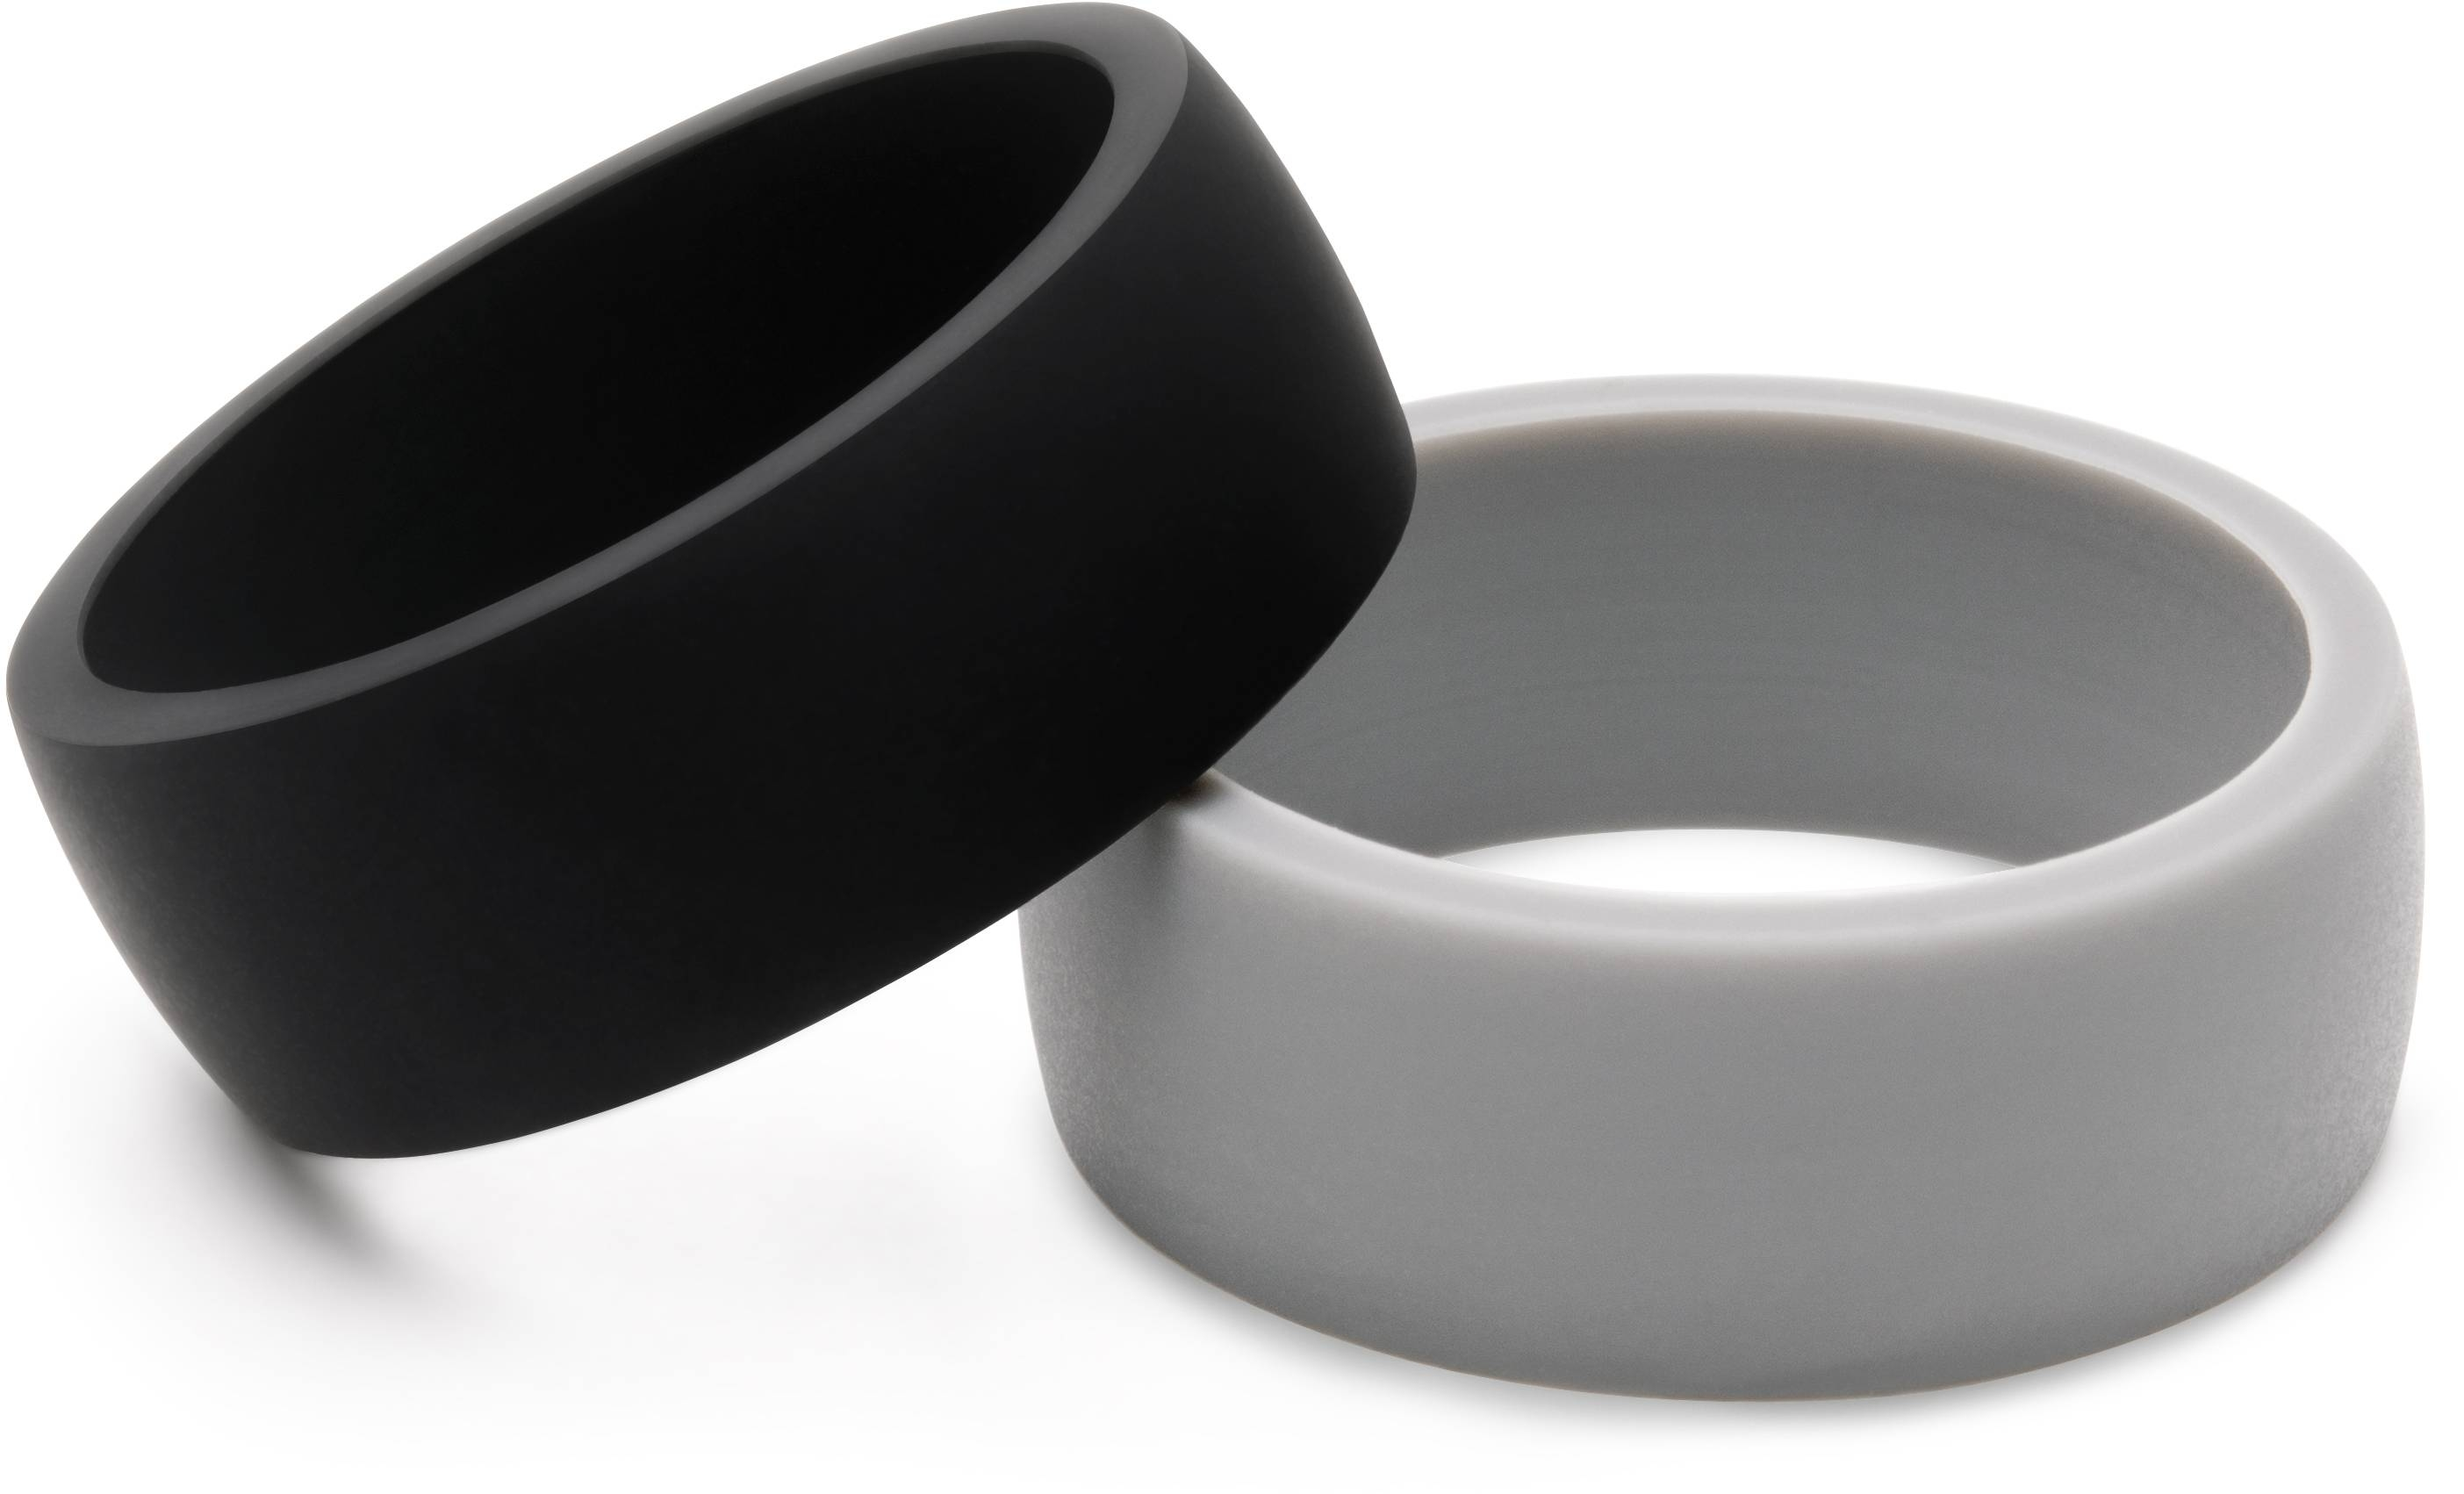 Silicone Wedding Ring, Silicone Wedding Band For Men, 2 Rings Pack Within Plastic Wedding Bands (View 13 of 15)